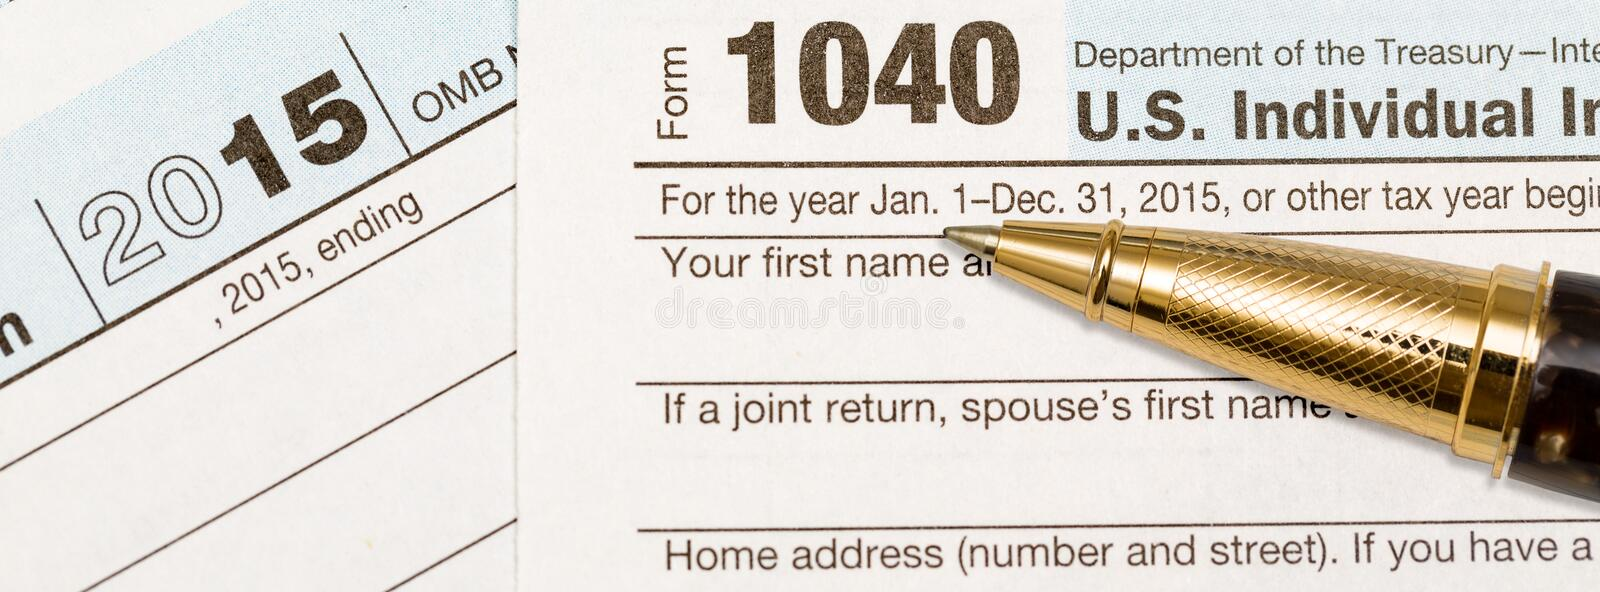 Gold pen laying on 2015 IRS form 1040. USA IRS tax form 1040 for year 2015 with gold ballpoint pen, Suitable for header image for tax preparer or accountant stock images